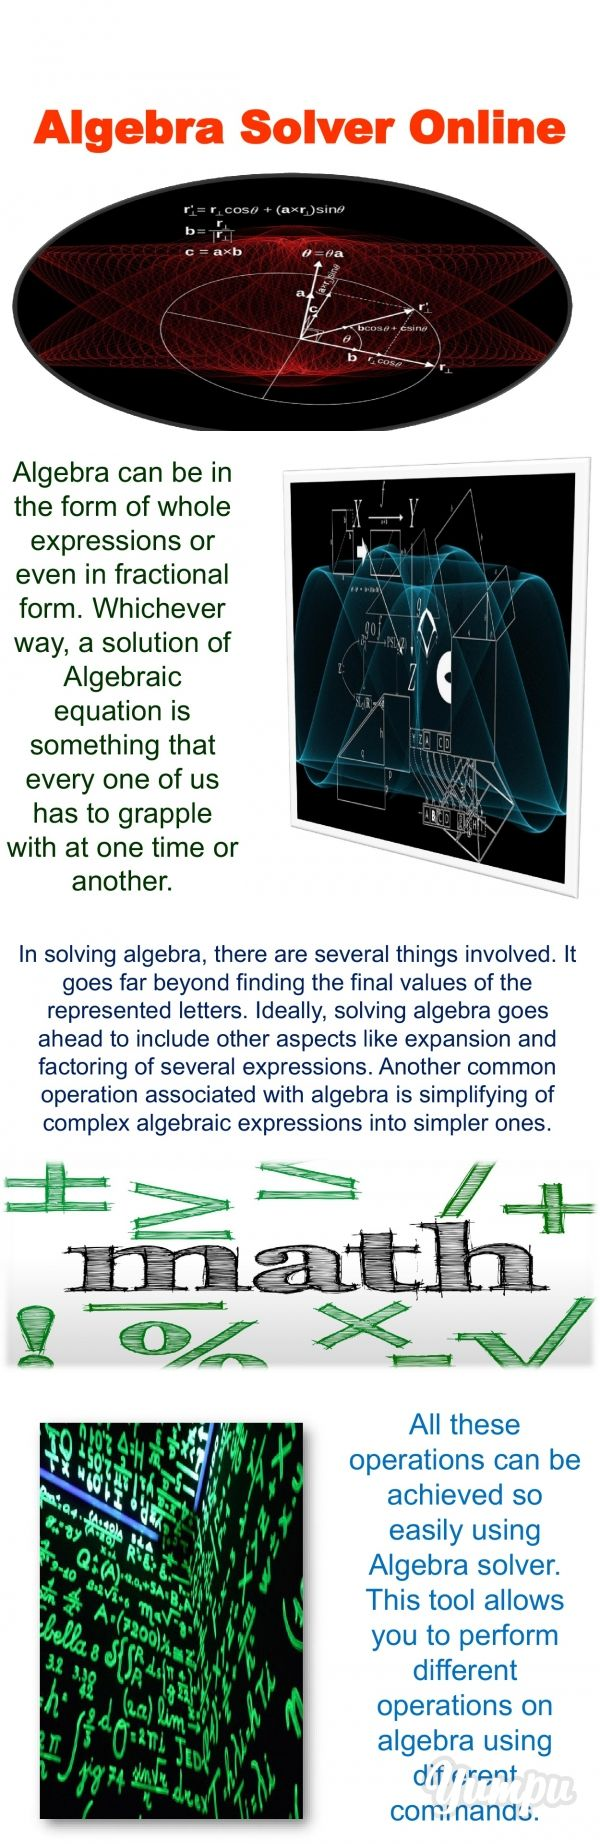 statistic solver statistics problem solver statistics tutorial  statistics problem solver sample skills for resume customer ideas about algebra solver expression solver algebra solver